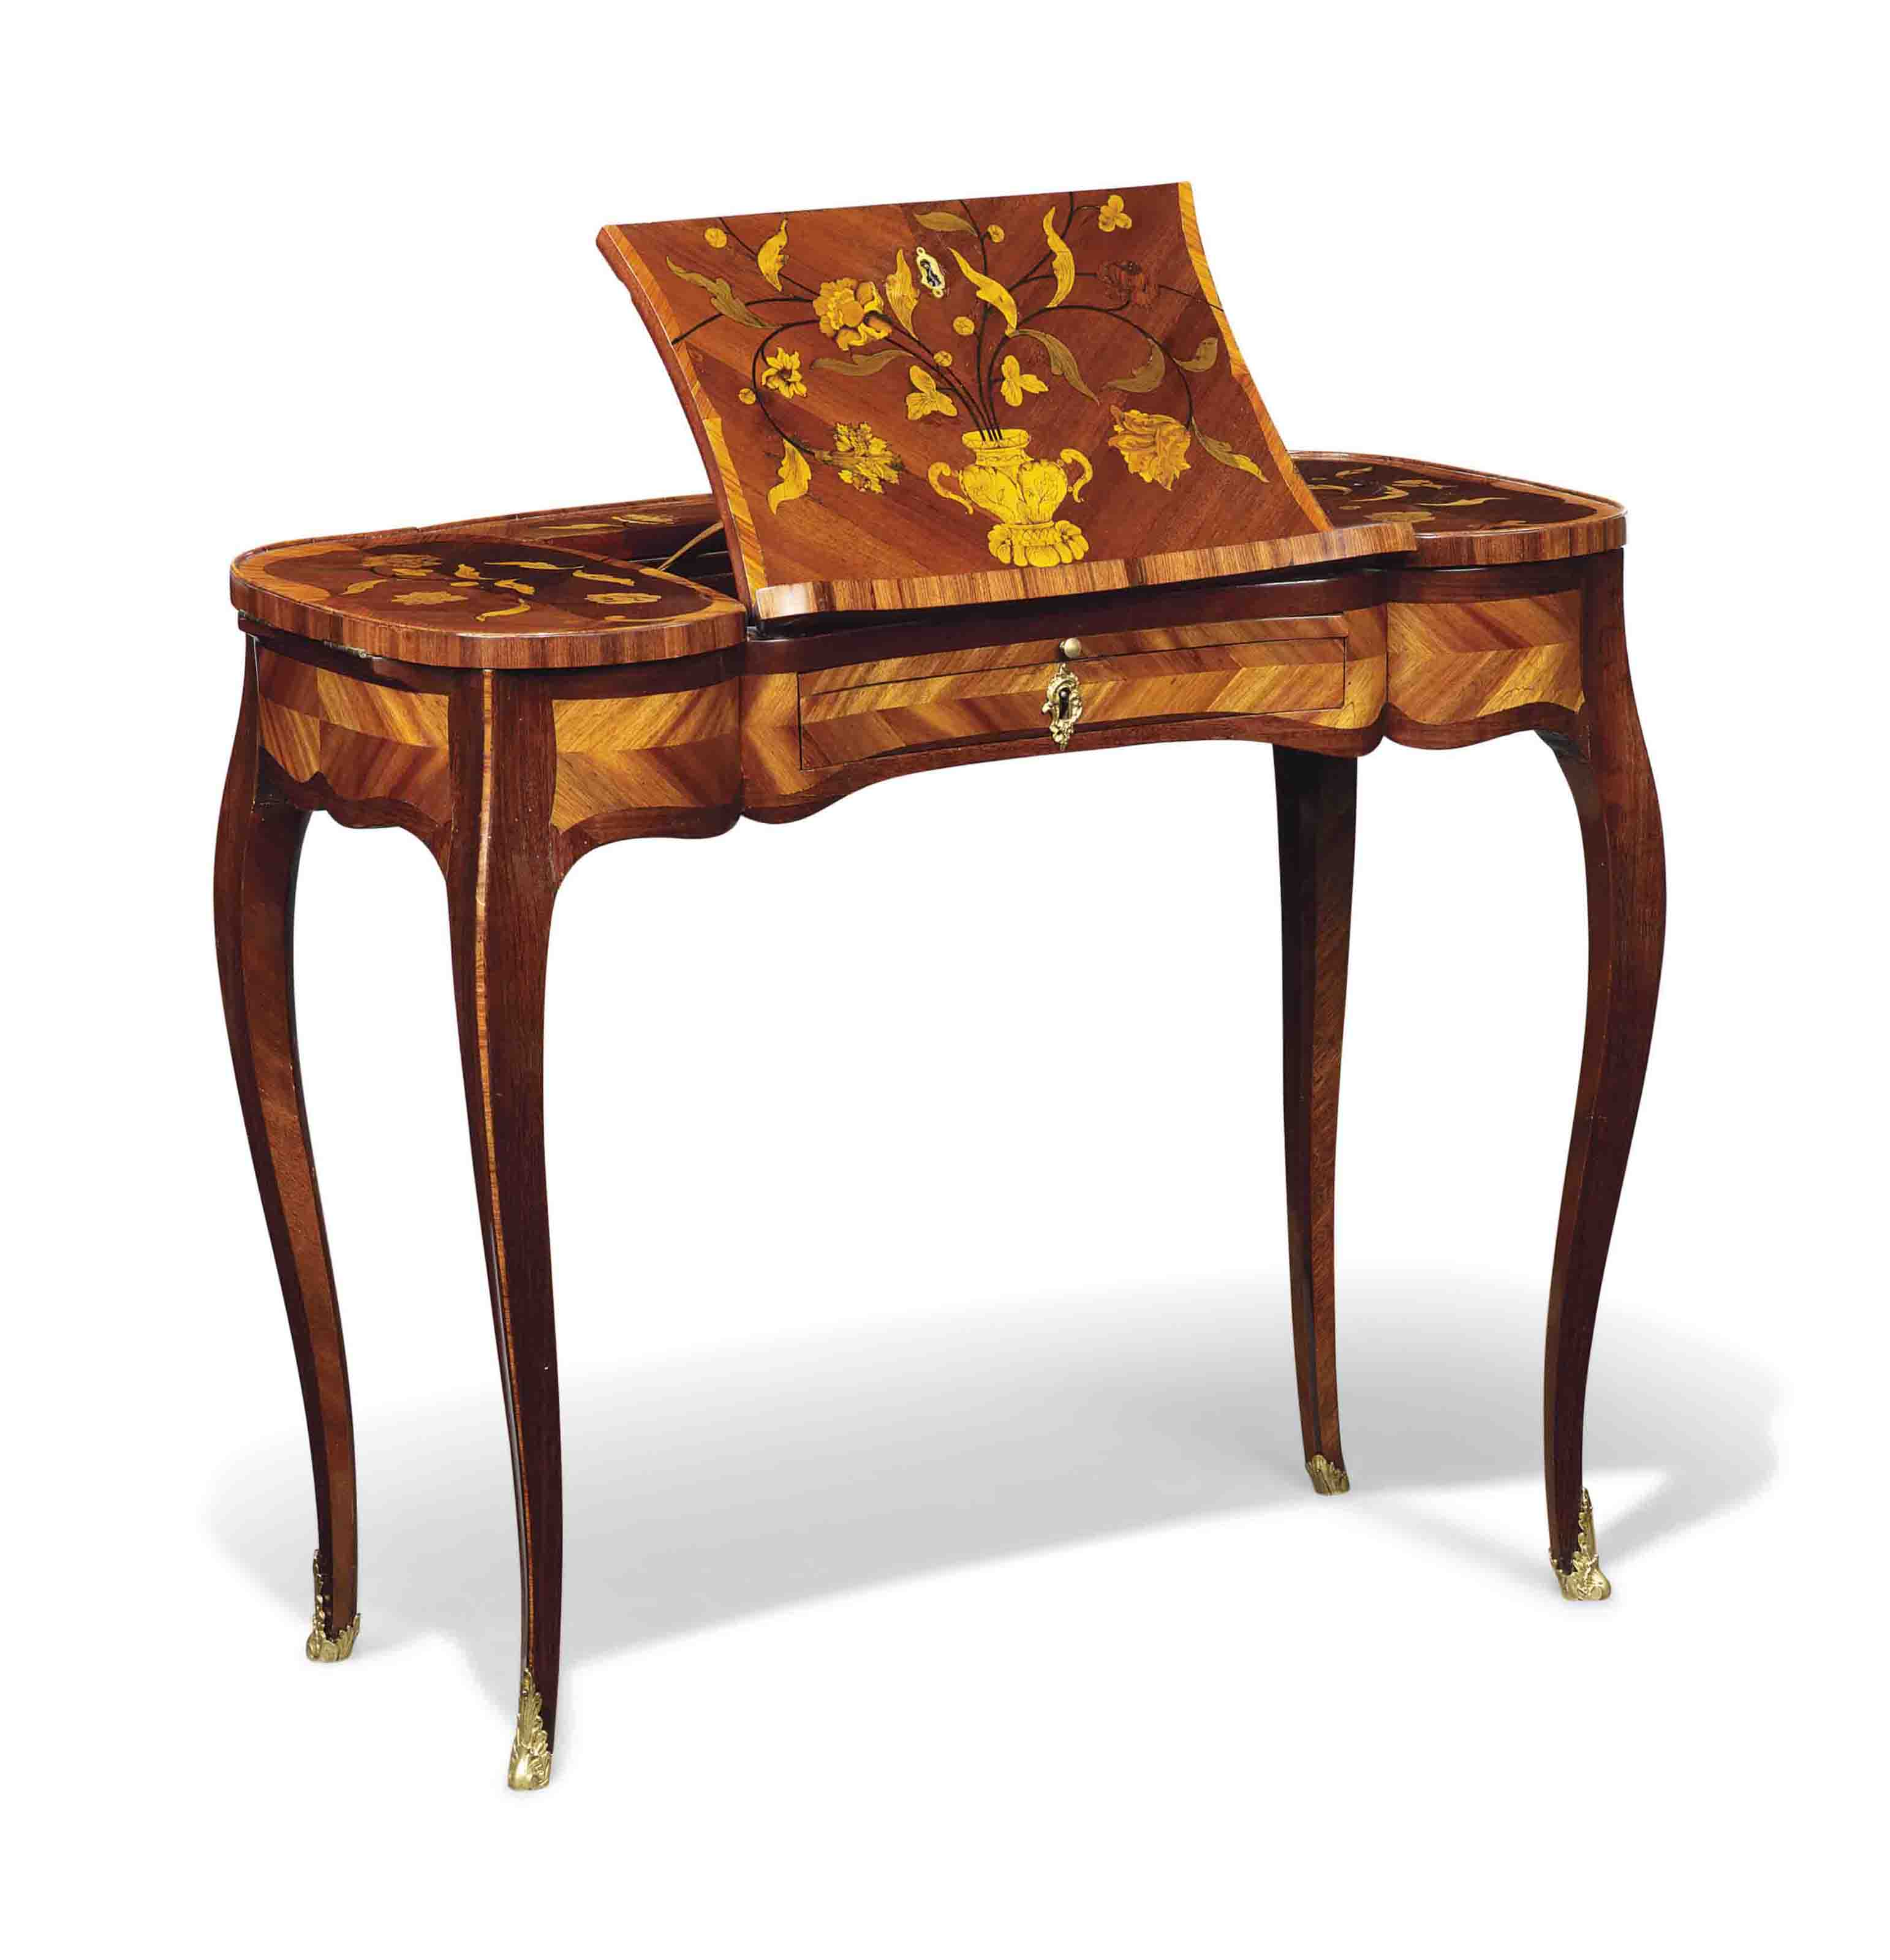 A LOUIS XV TULIPWOOD, AMARANTH AND FLORAL MARQUETRY WRITING TABLE